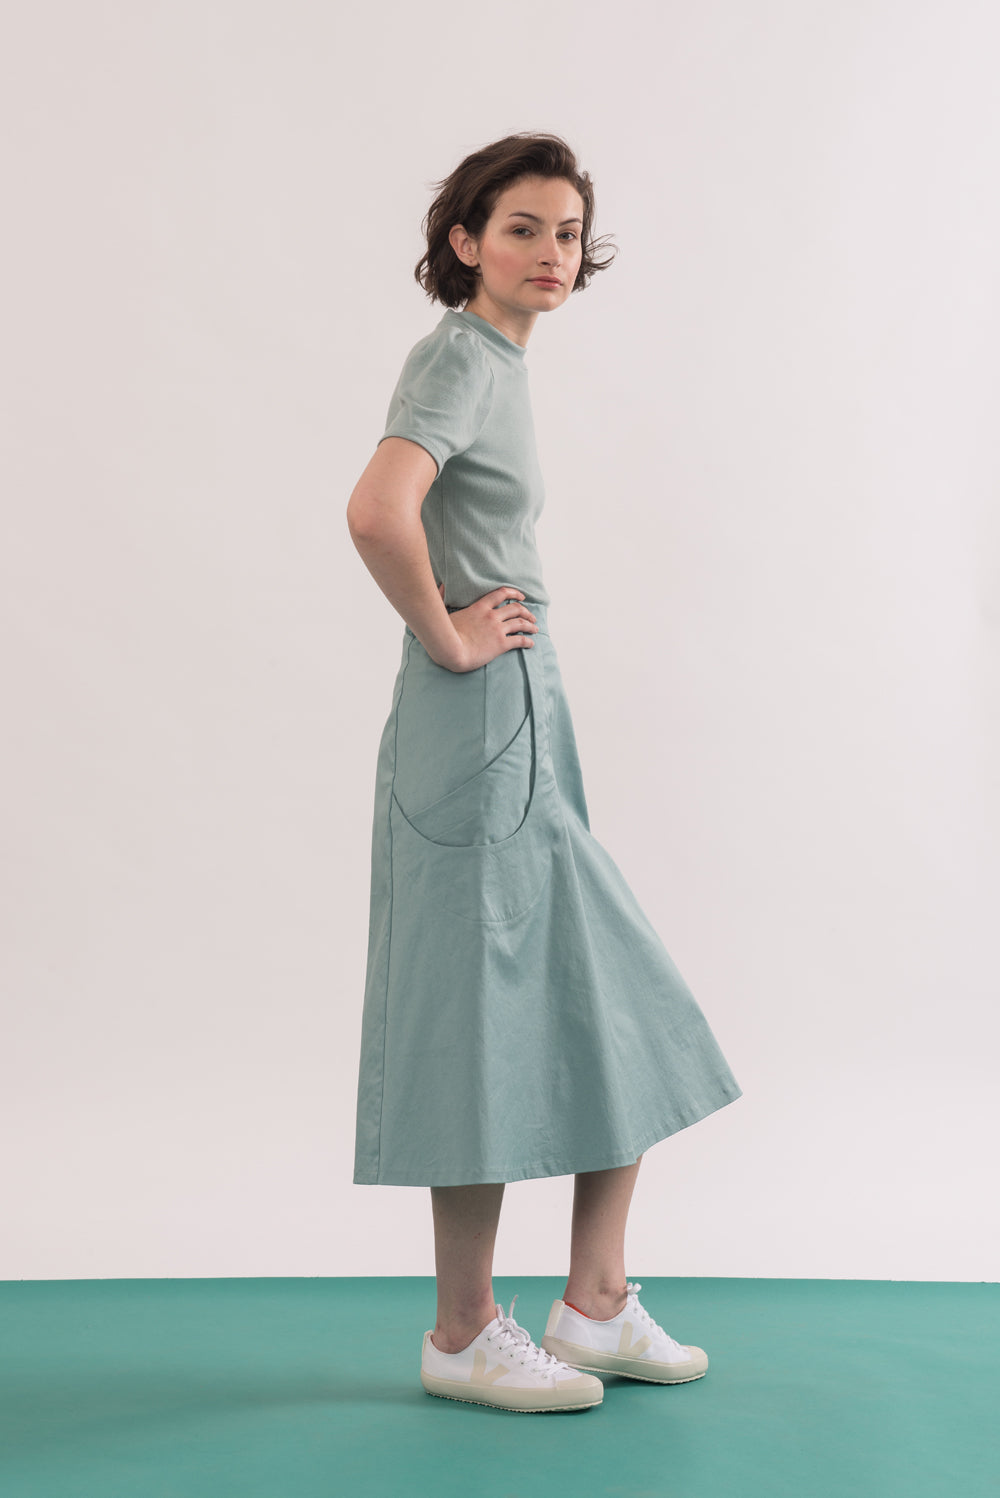 Abramovic Skirt by Jennifer Glasgow, Seafoam, side view, A-line skirt, midi length, origami pockets, organic cotton twill, eco fabric, OEKO-TEX certified Standard 100, sizes XS to XL, made in Montreal Canada